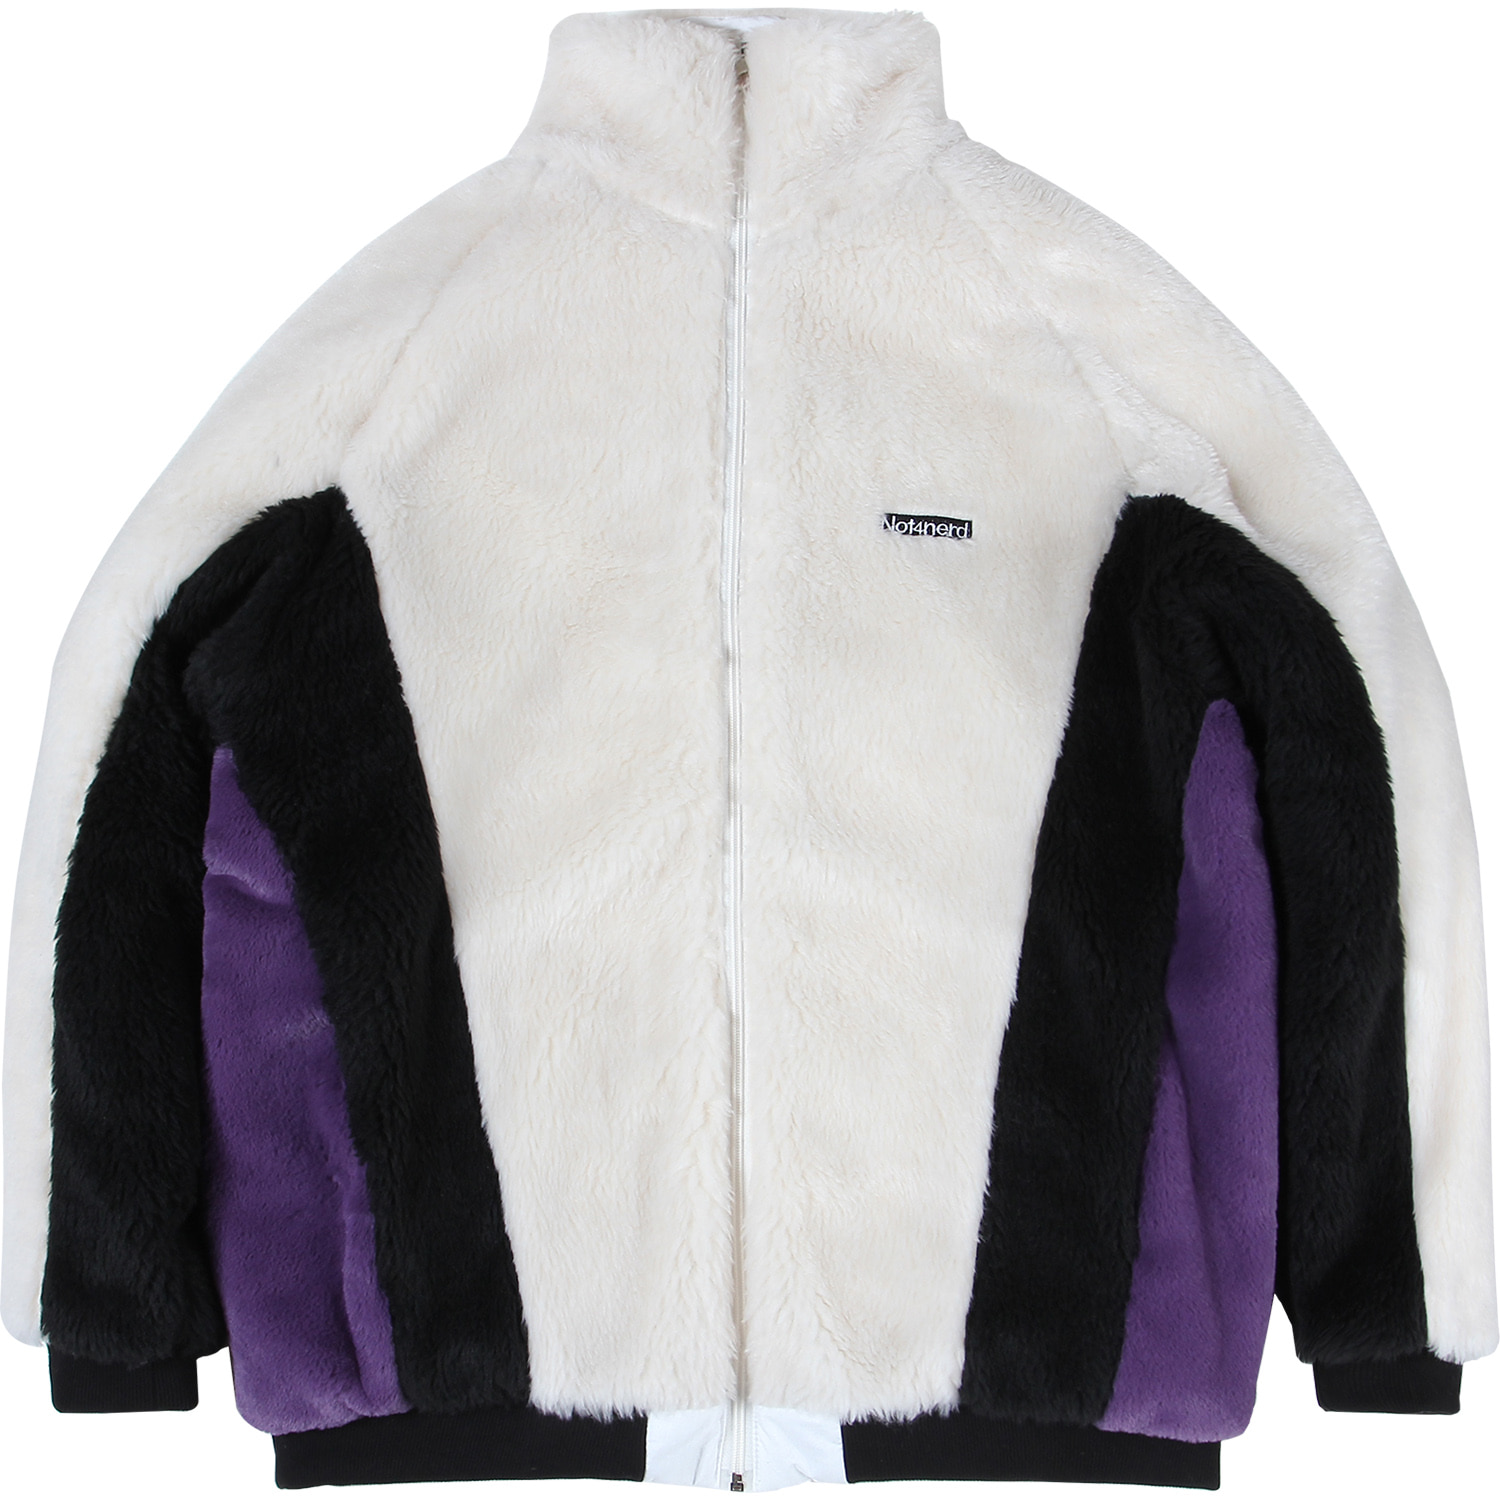 Reversible Symbol Logo Boa Fleece Jacket [White],NOT4NERD